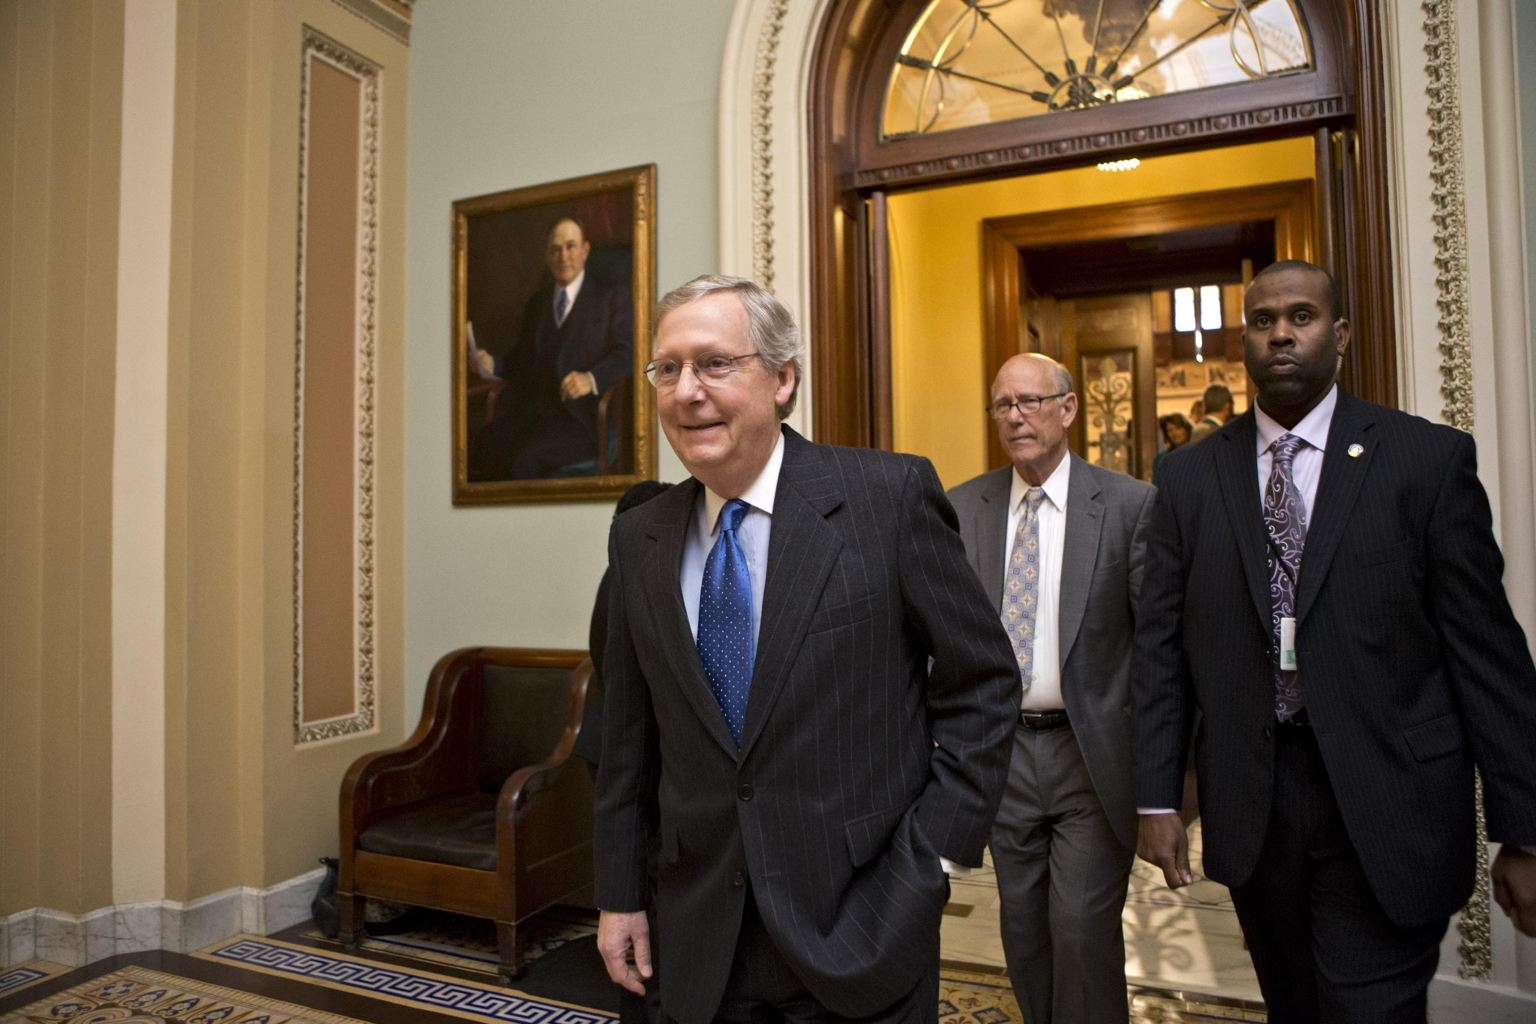 Senate Minority Leader Mitch McConnell and Sen. Pat Robers  (AP Photo/J. Scott Applewhite)